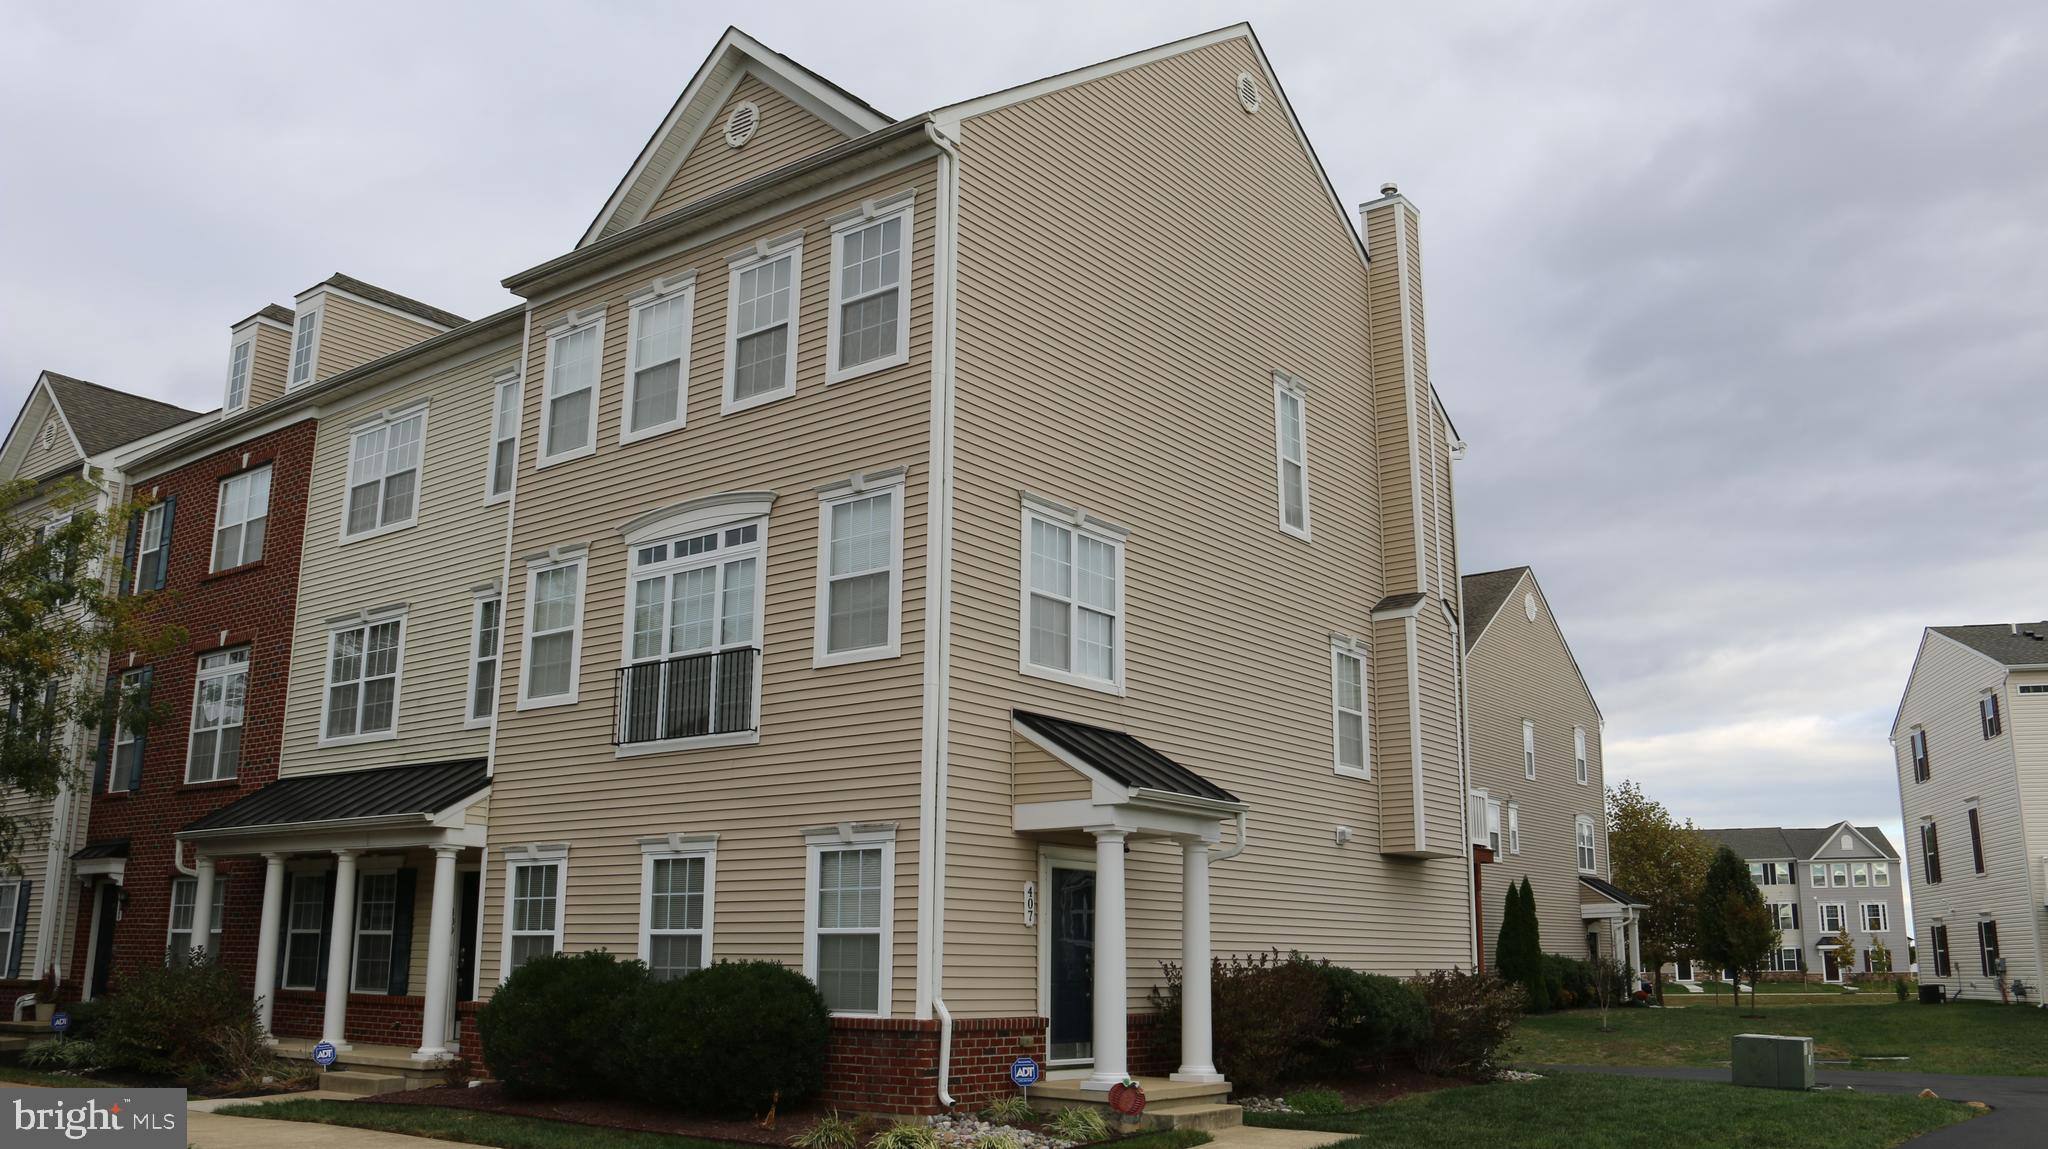 Welcome to our listing at 407 Toftrees Dr. in Middletown Delaware.  This lovely and stylish 3 bedroom 2 Full, 2 half bath end unit town-home located in the Appoquinimink School district features a ton of desirable amenities you're sure to love such as....A beautiful corner lot, rear facing garage, full finished basement with box trim and recessed lighting, tasteful neutral paint and carpeting, large kitchen with abundant counter space open to the family room.  42 inch maple cabinetry, stylish black appliances, 9 foot ceilings, a formal dining room, tuck-away staircase, party deck, spacious master retreat with walk-in closet and master bath, spacious secondary bedrooms, and much more.  This home is walking distance to many popular locations for shopping, dining, and entertainment.  If you're looking for a home with a fantastic combination of affordability, accessibility, and convenience, look no further!